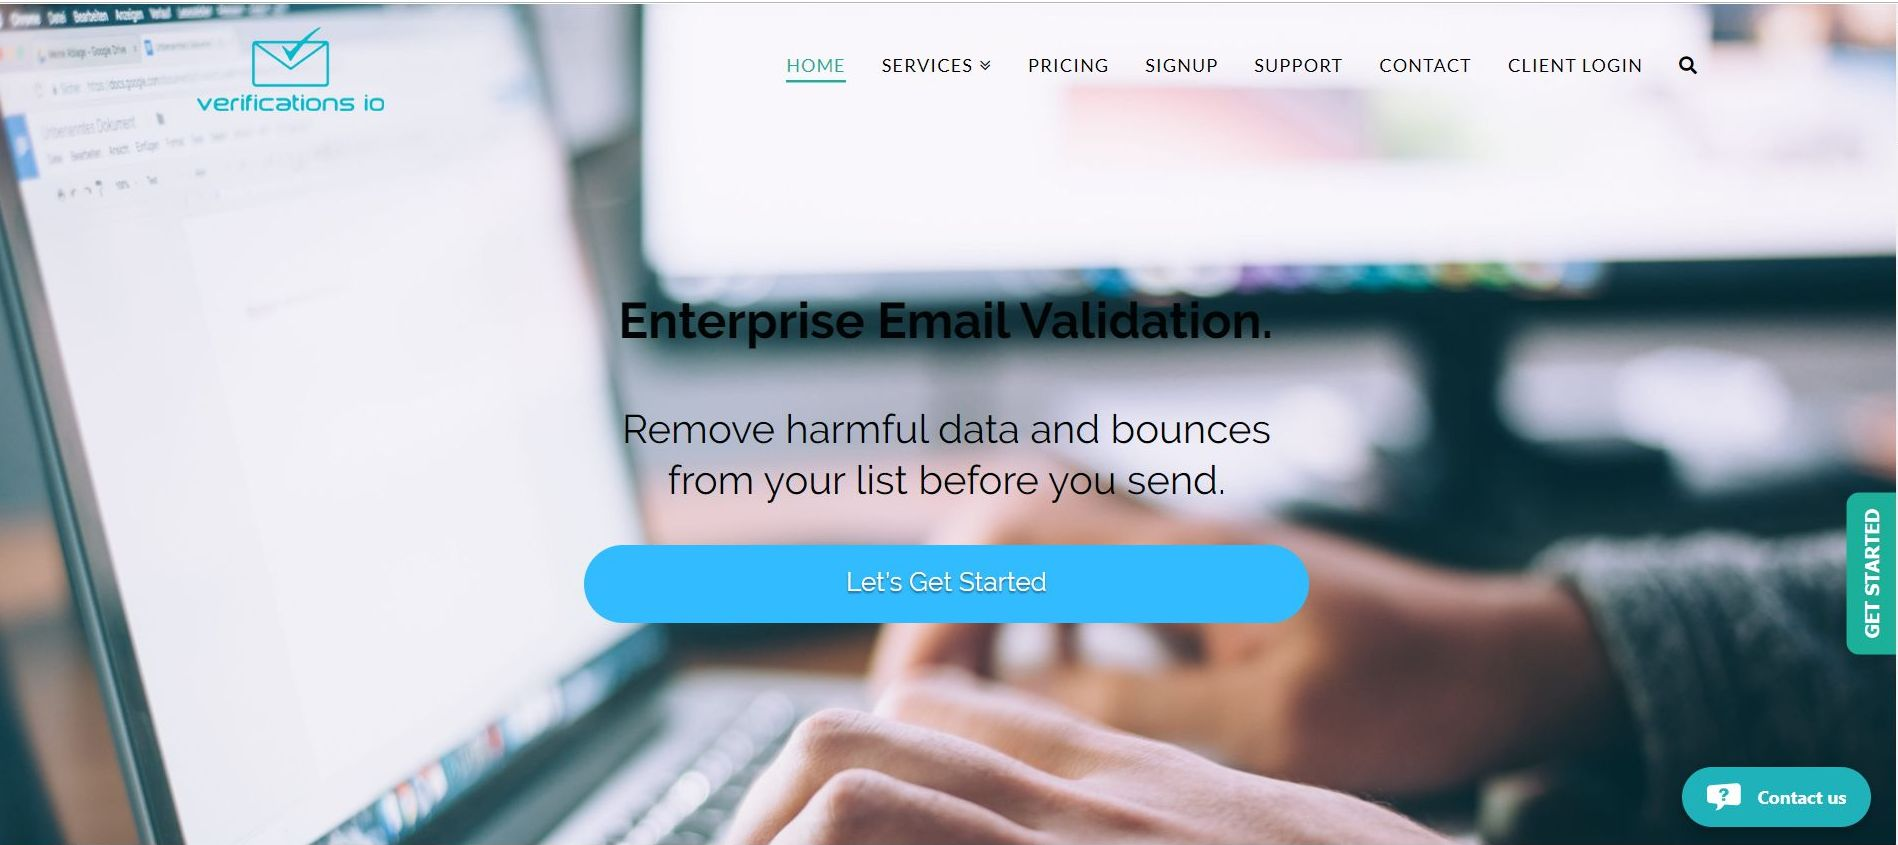 800+ Million Emails Leaked Online by Email Verification